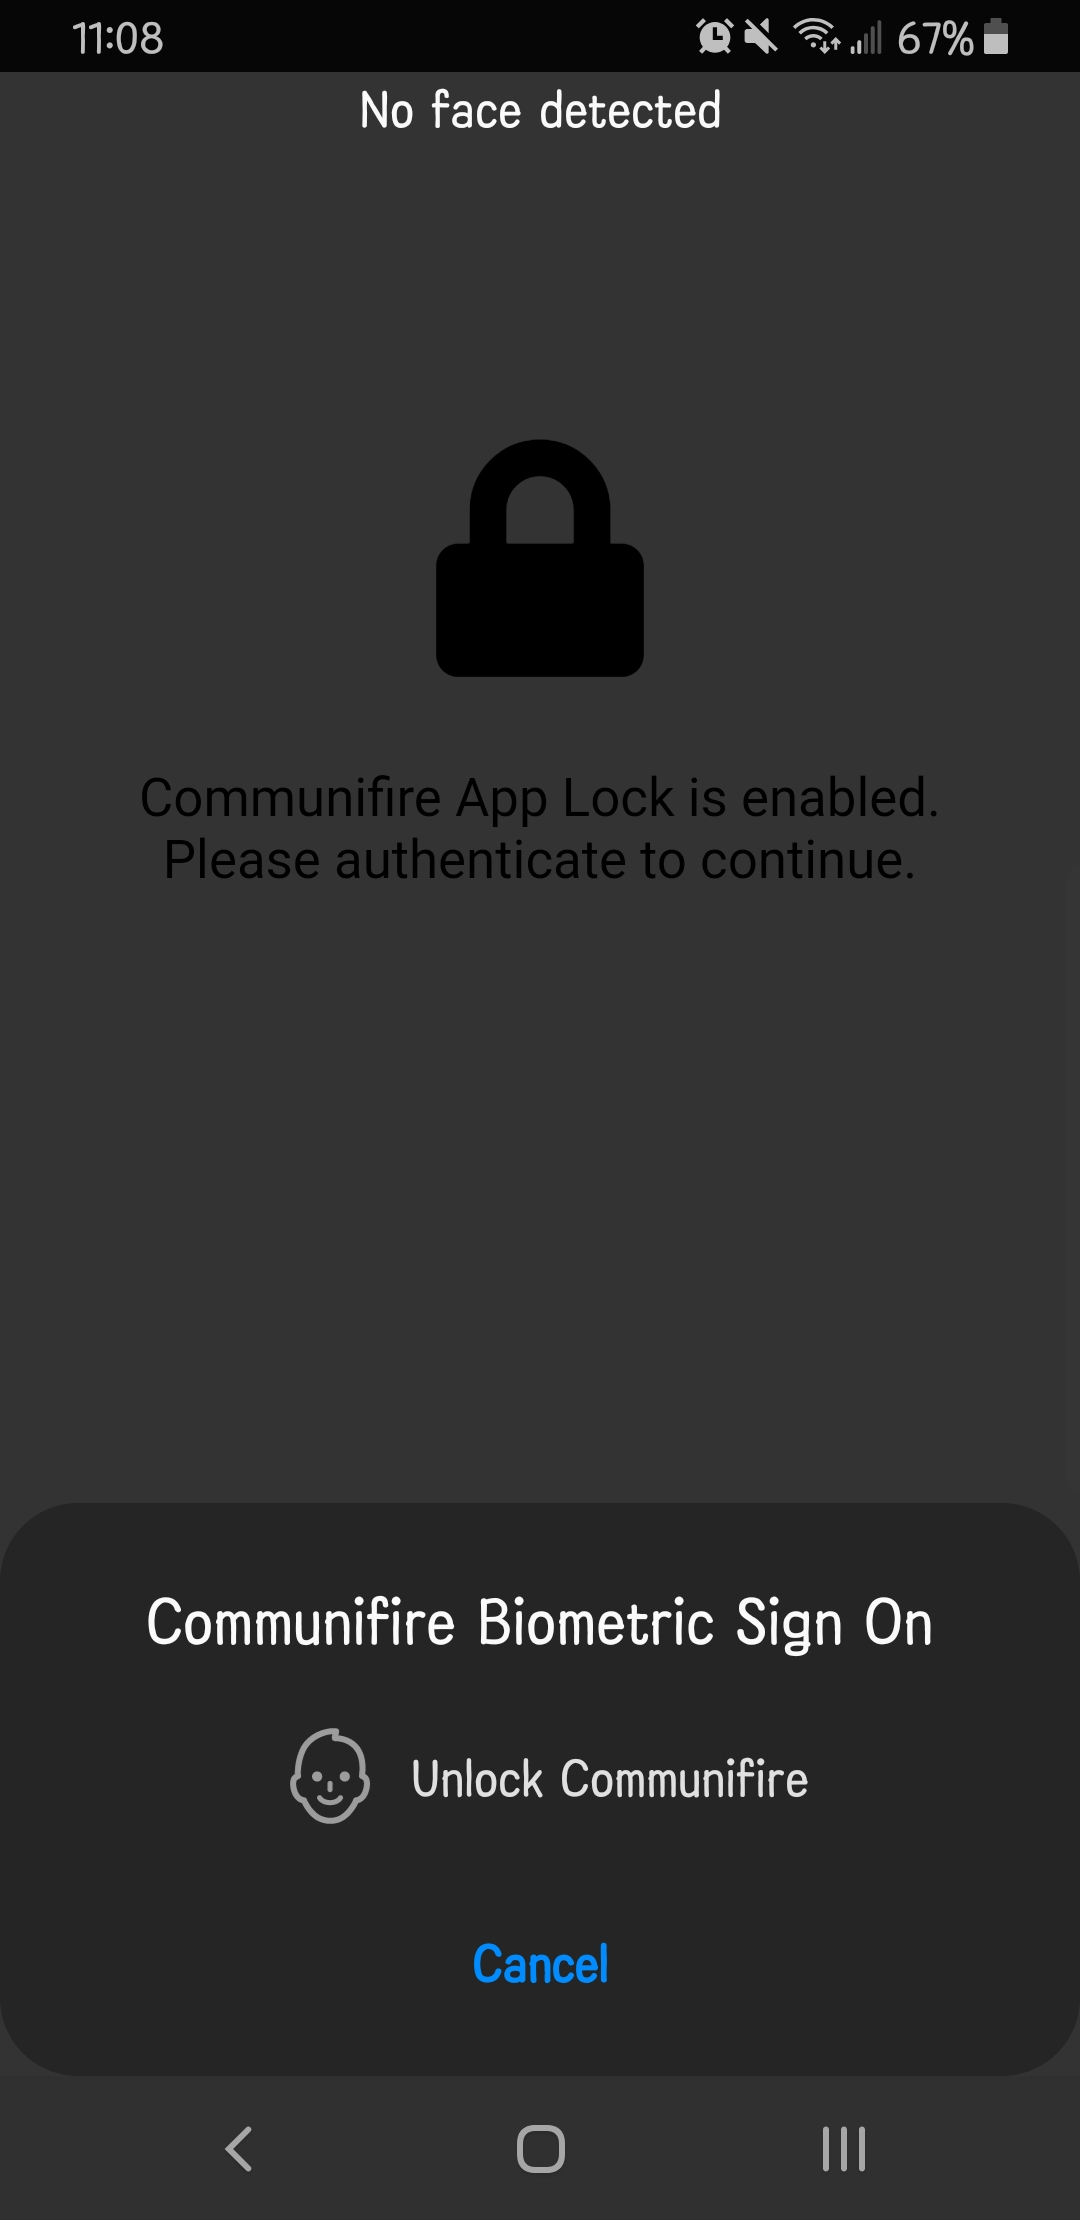 Biometrics sign on prompt